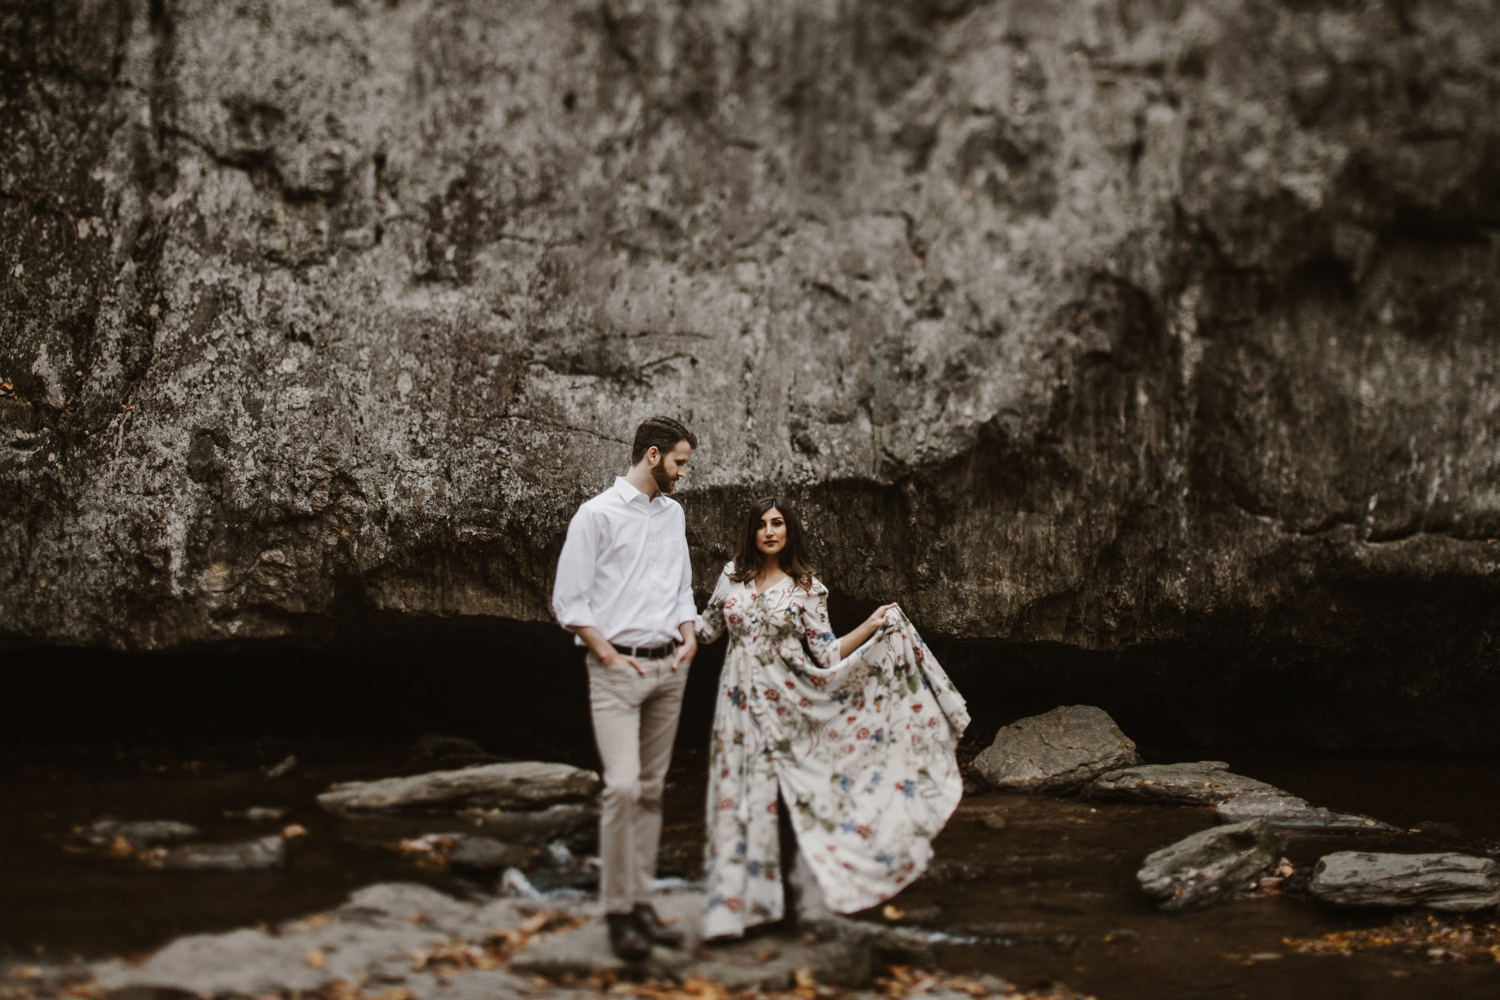 sundas-and-scotts-engagement-61_baltimore-washington-d-c-waterfall-kilgore-engagement-session-maxi-dress-earthy-maryland-wedding-photographer-kate-ann-photography-phot